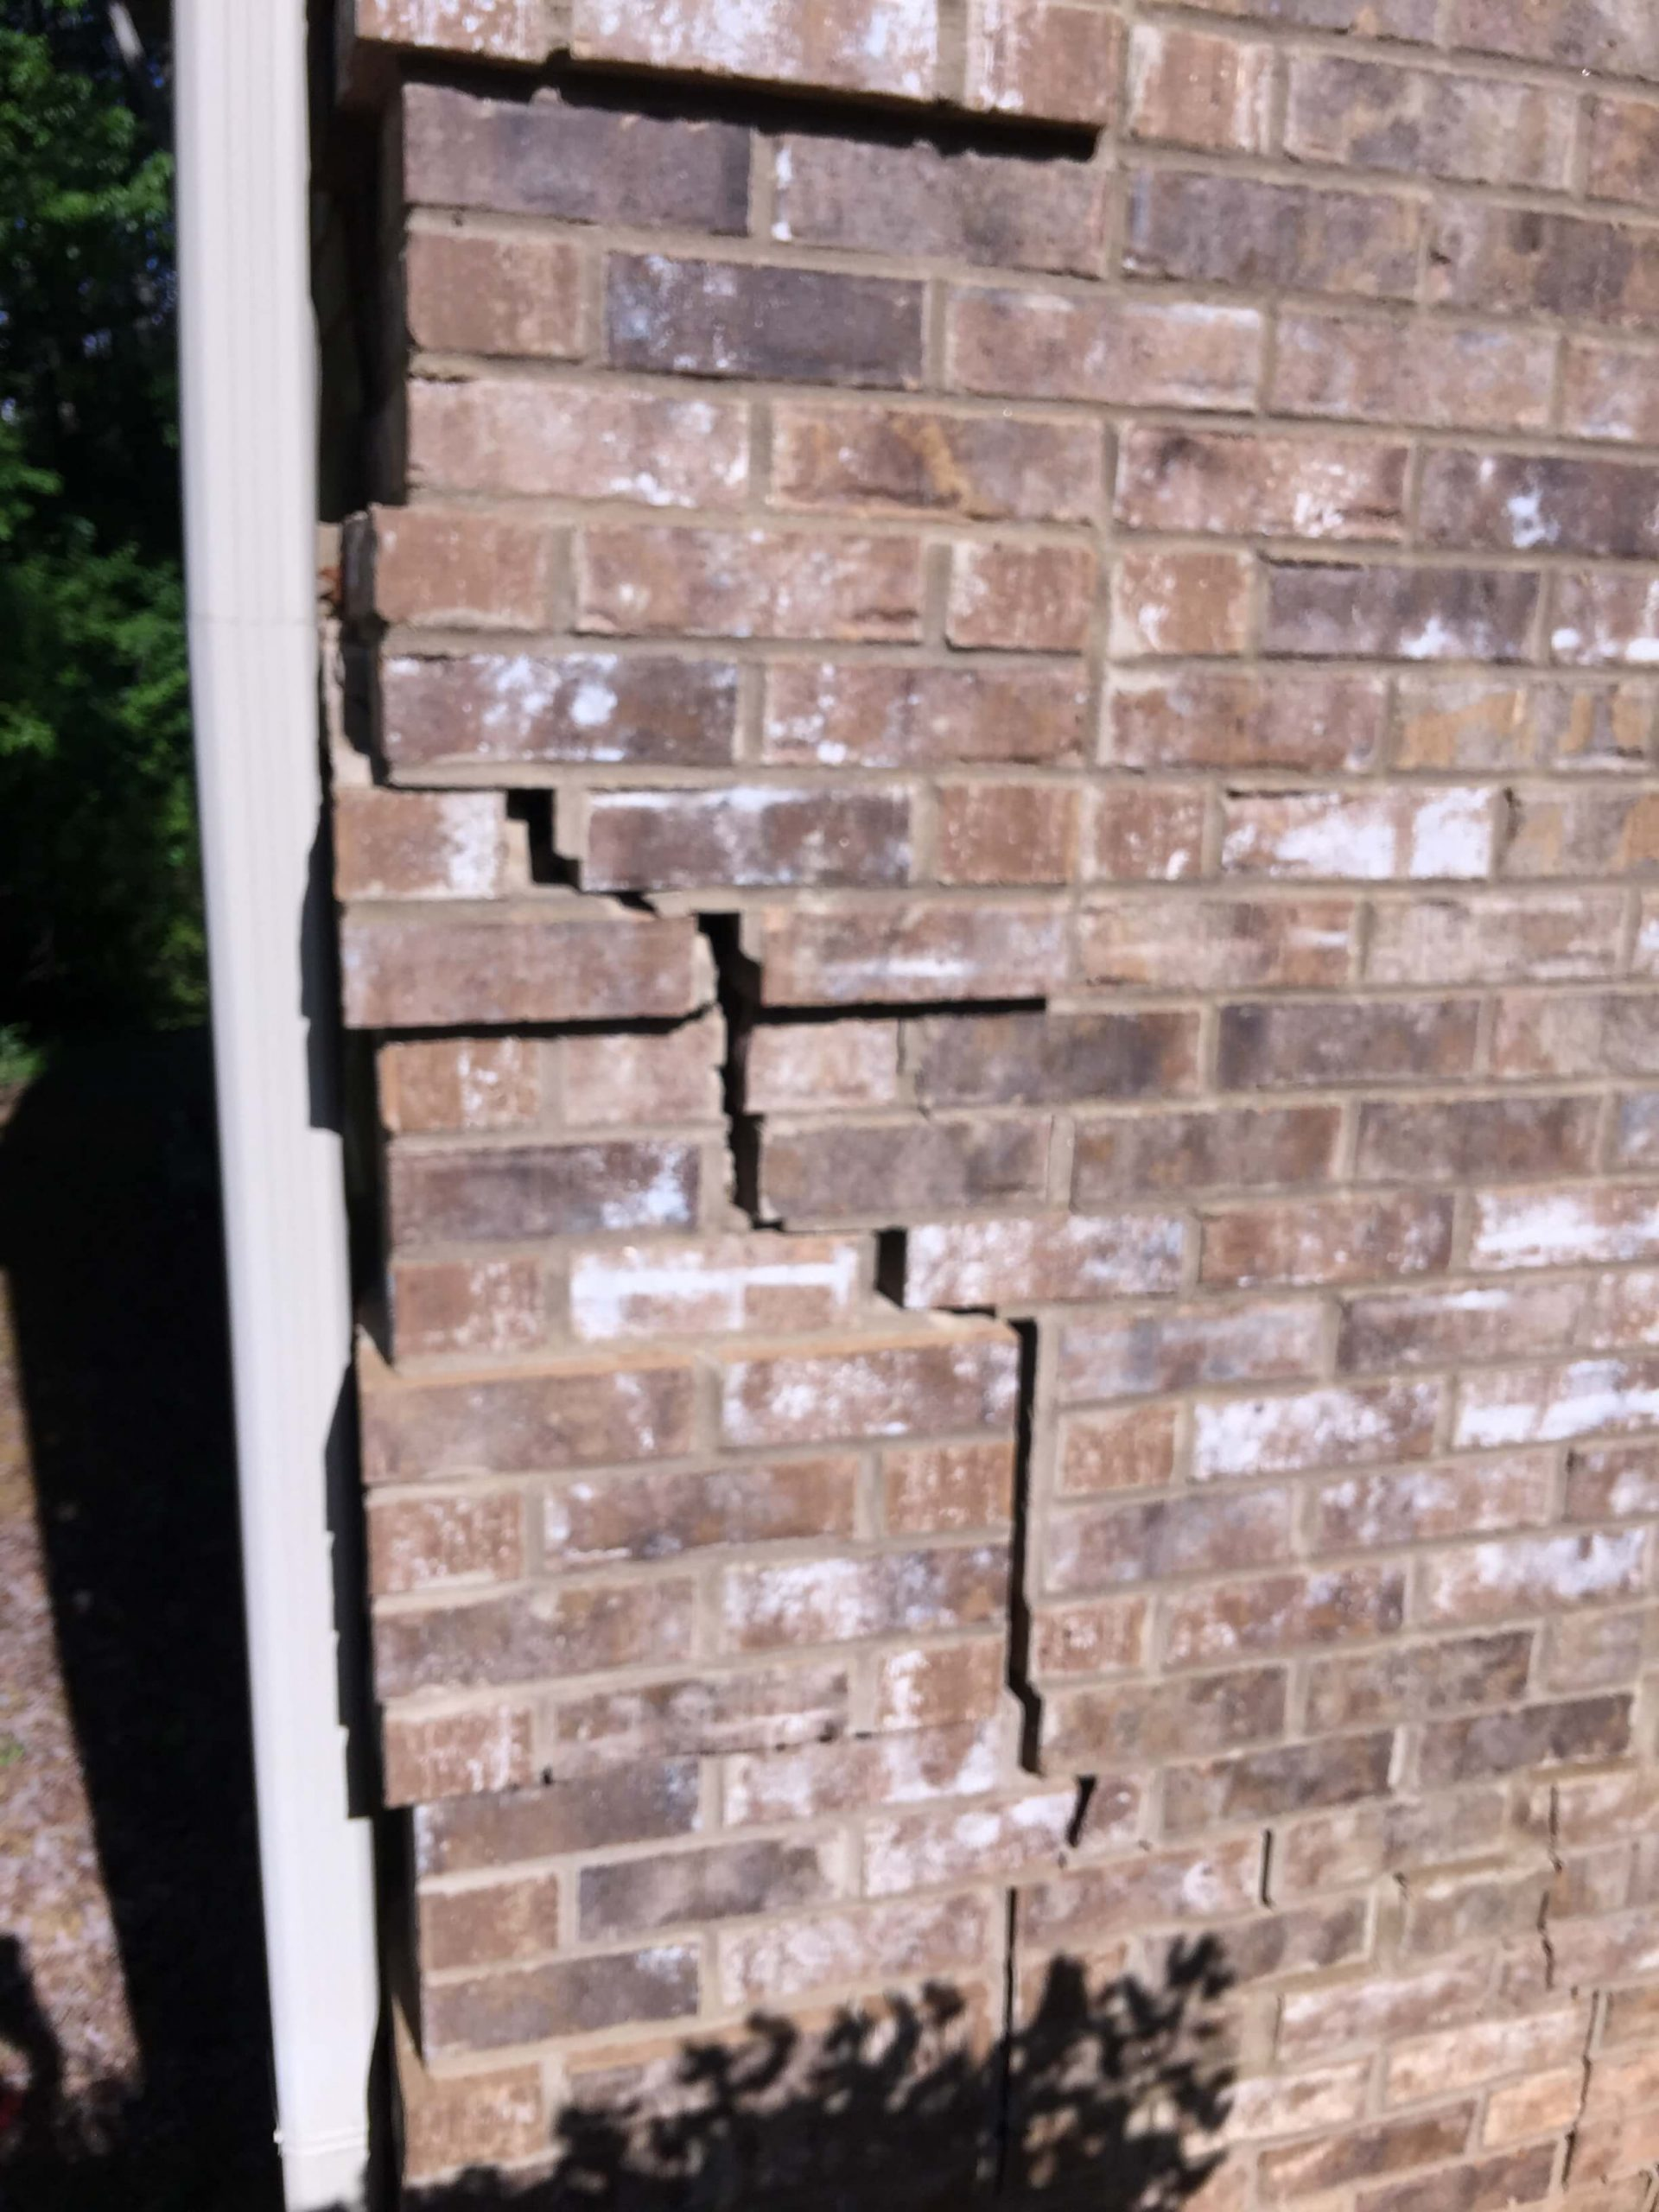 Stair Step Brick Crack